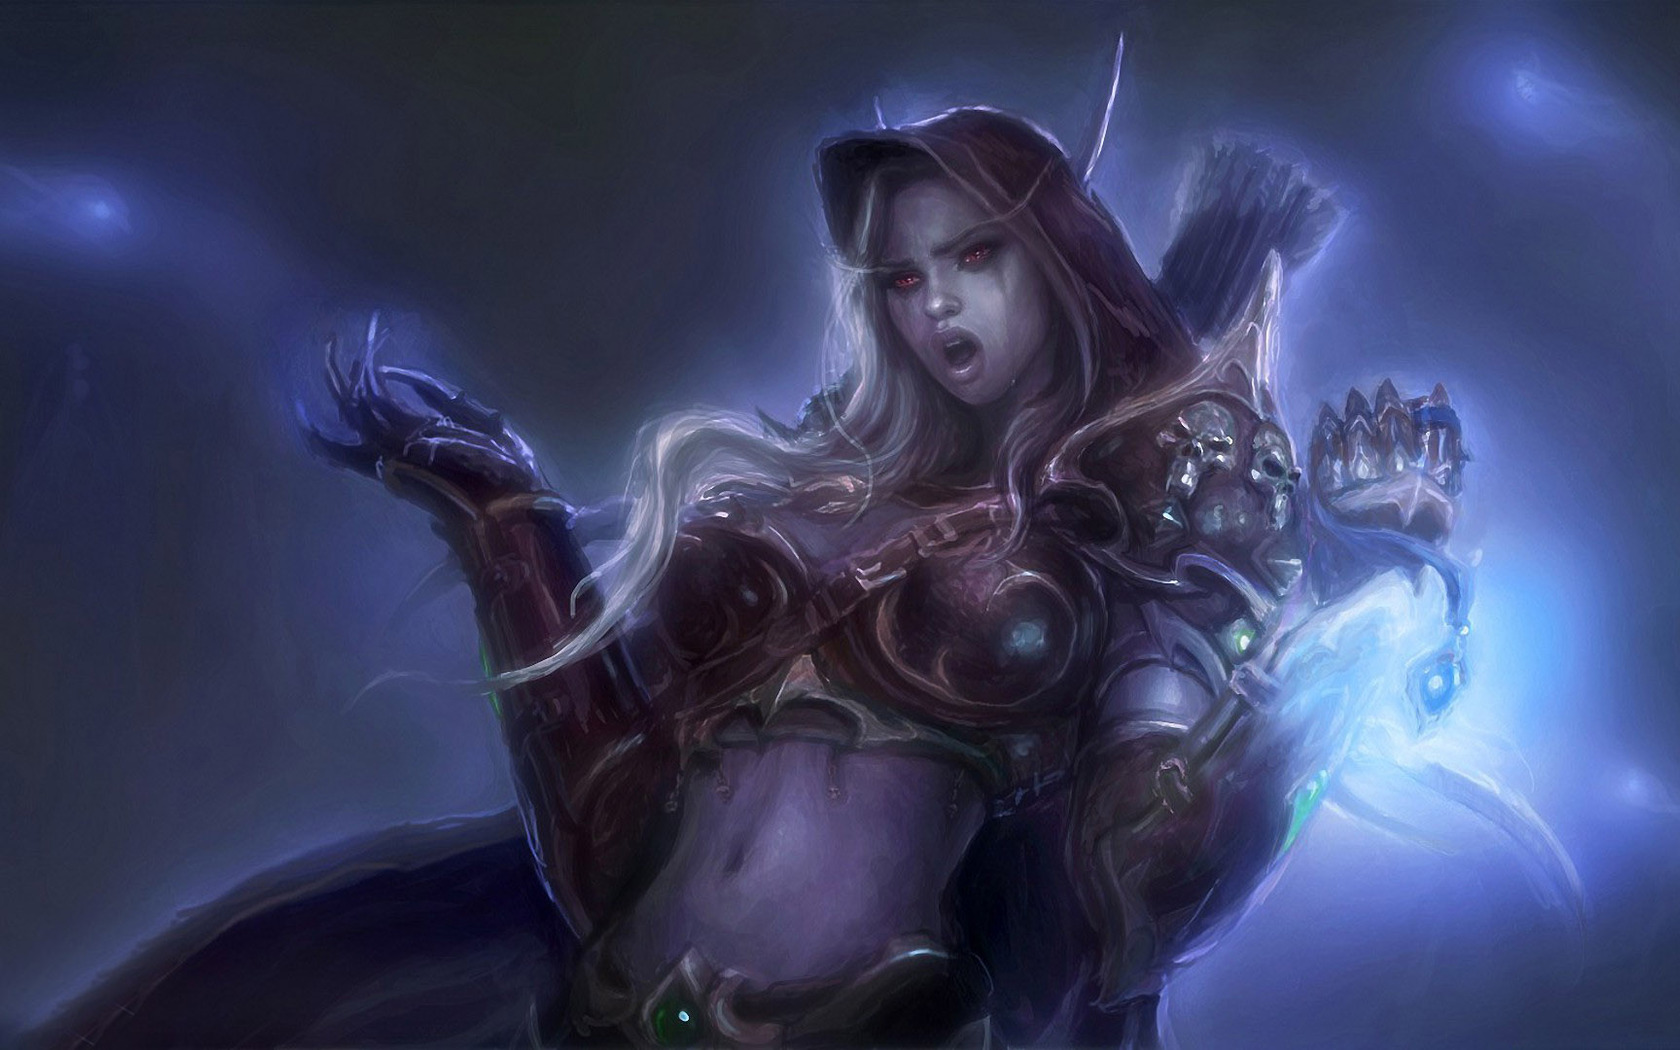 World of warcraft lady sylvanas porn movies hardcore picture